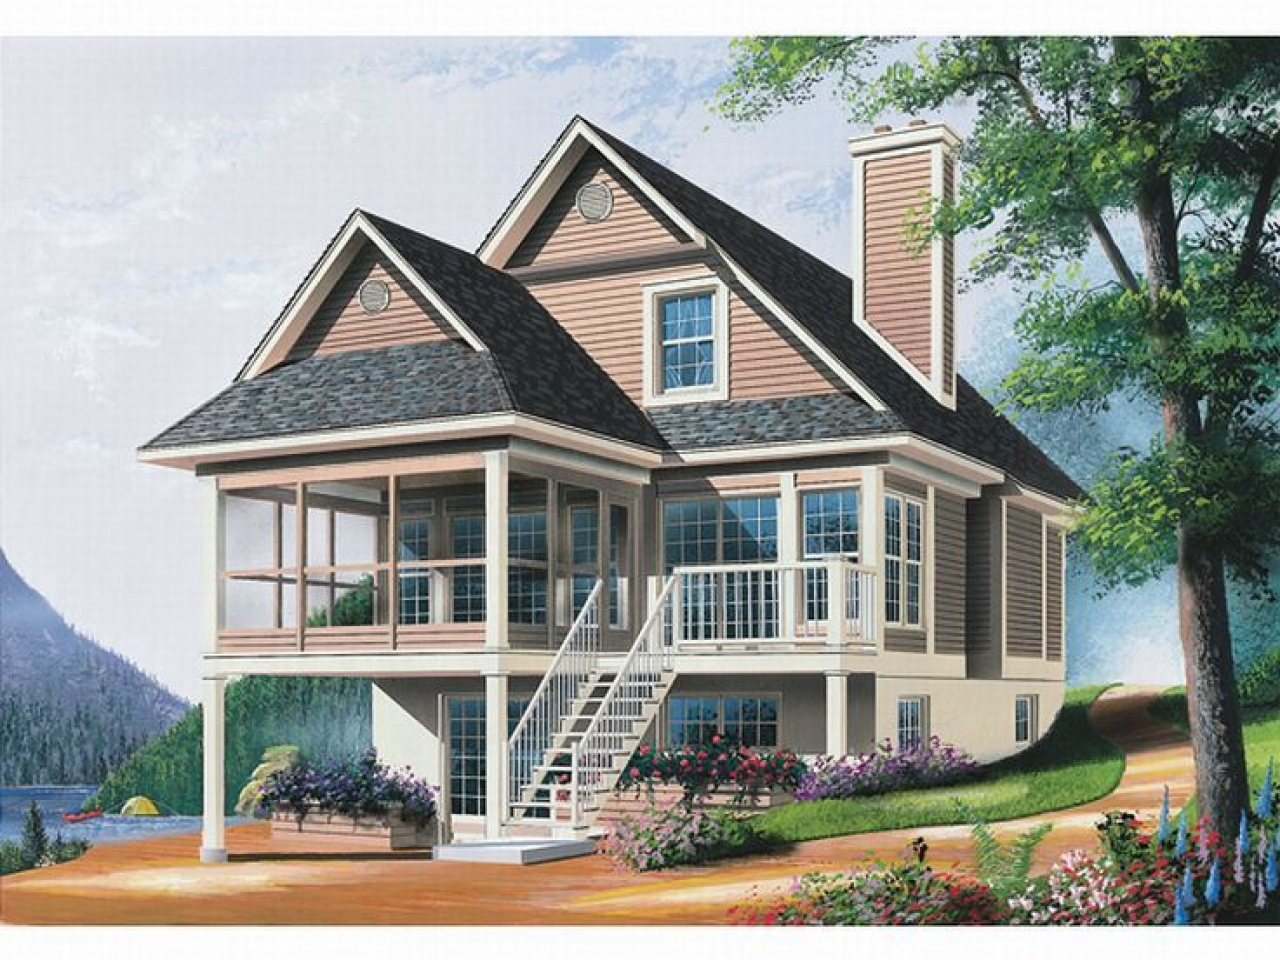 Coastal house plans waterfront homes house plans lakeside for Waterfront home plans